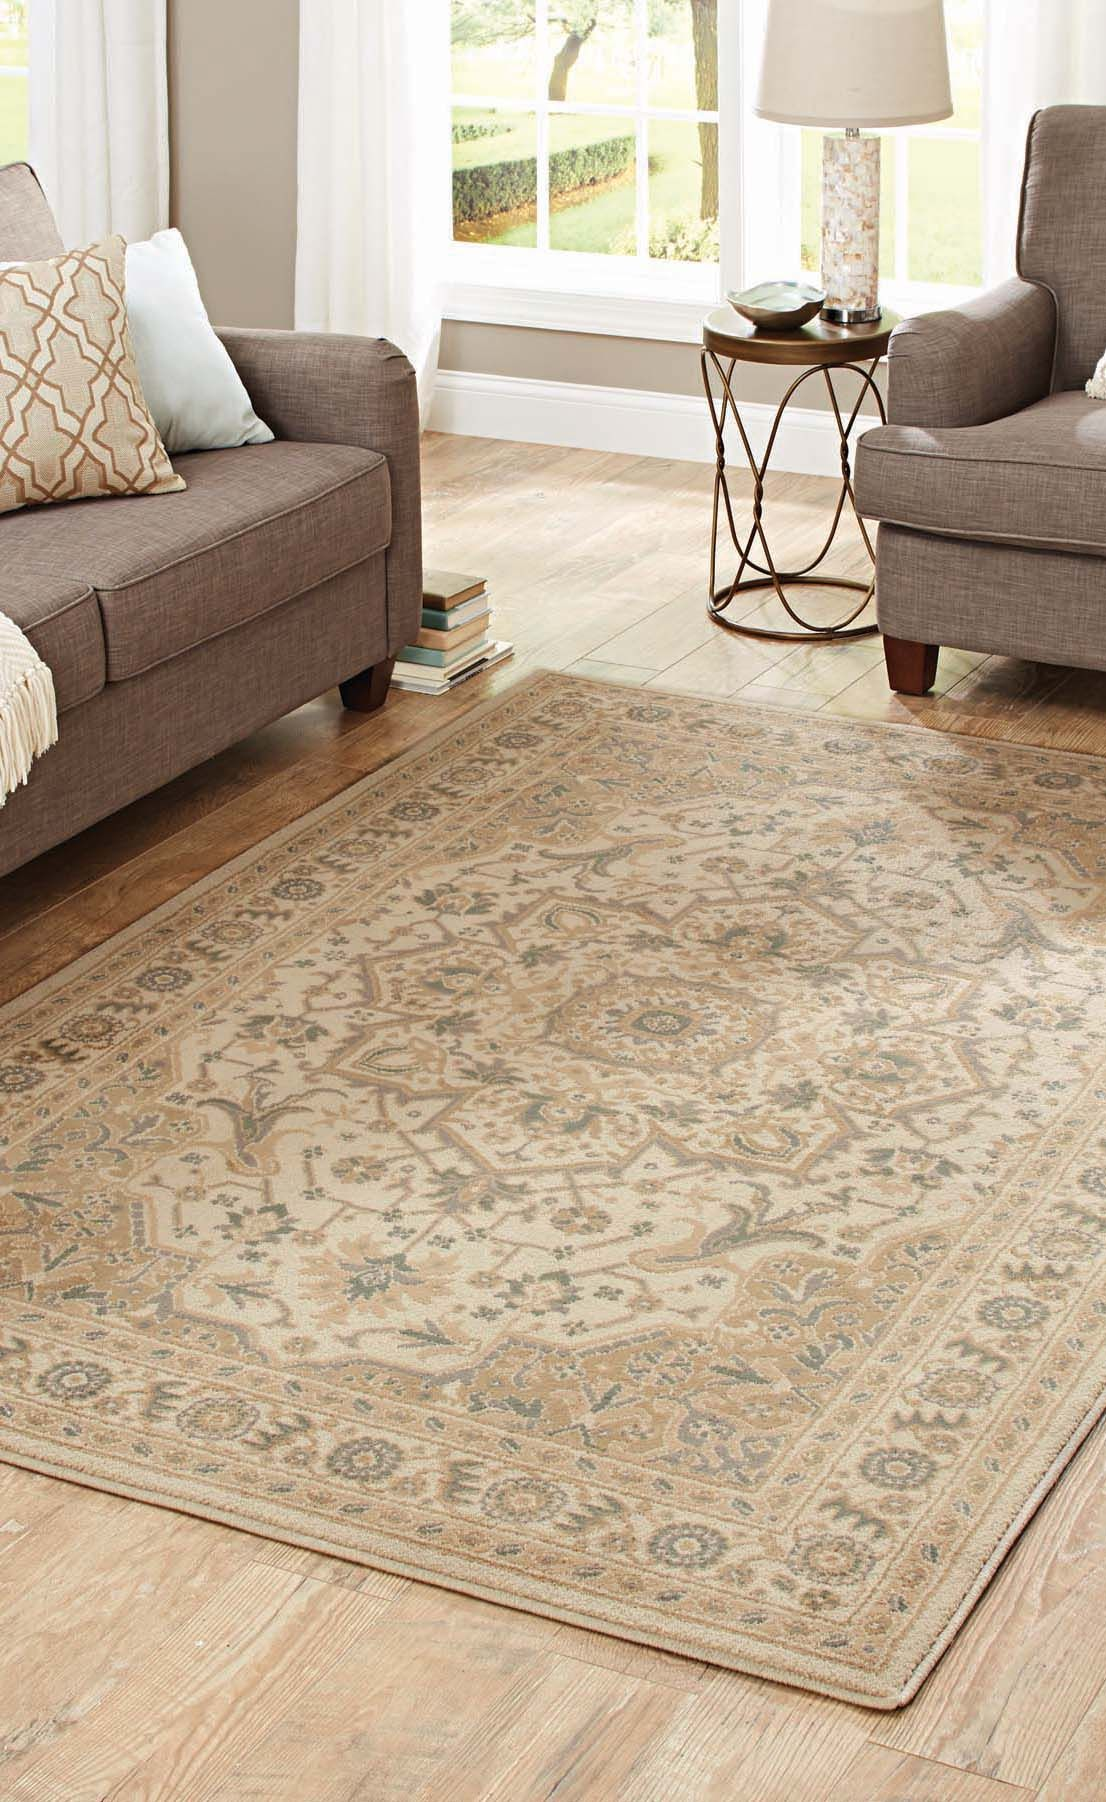 Better Homes and Gardens Neutral Traditions Area Rug or Runner